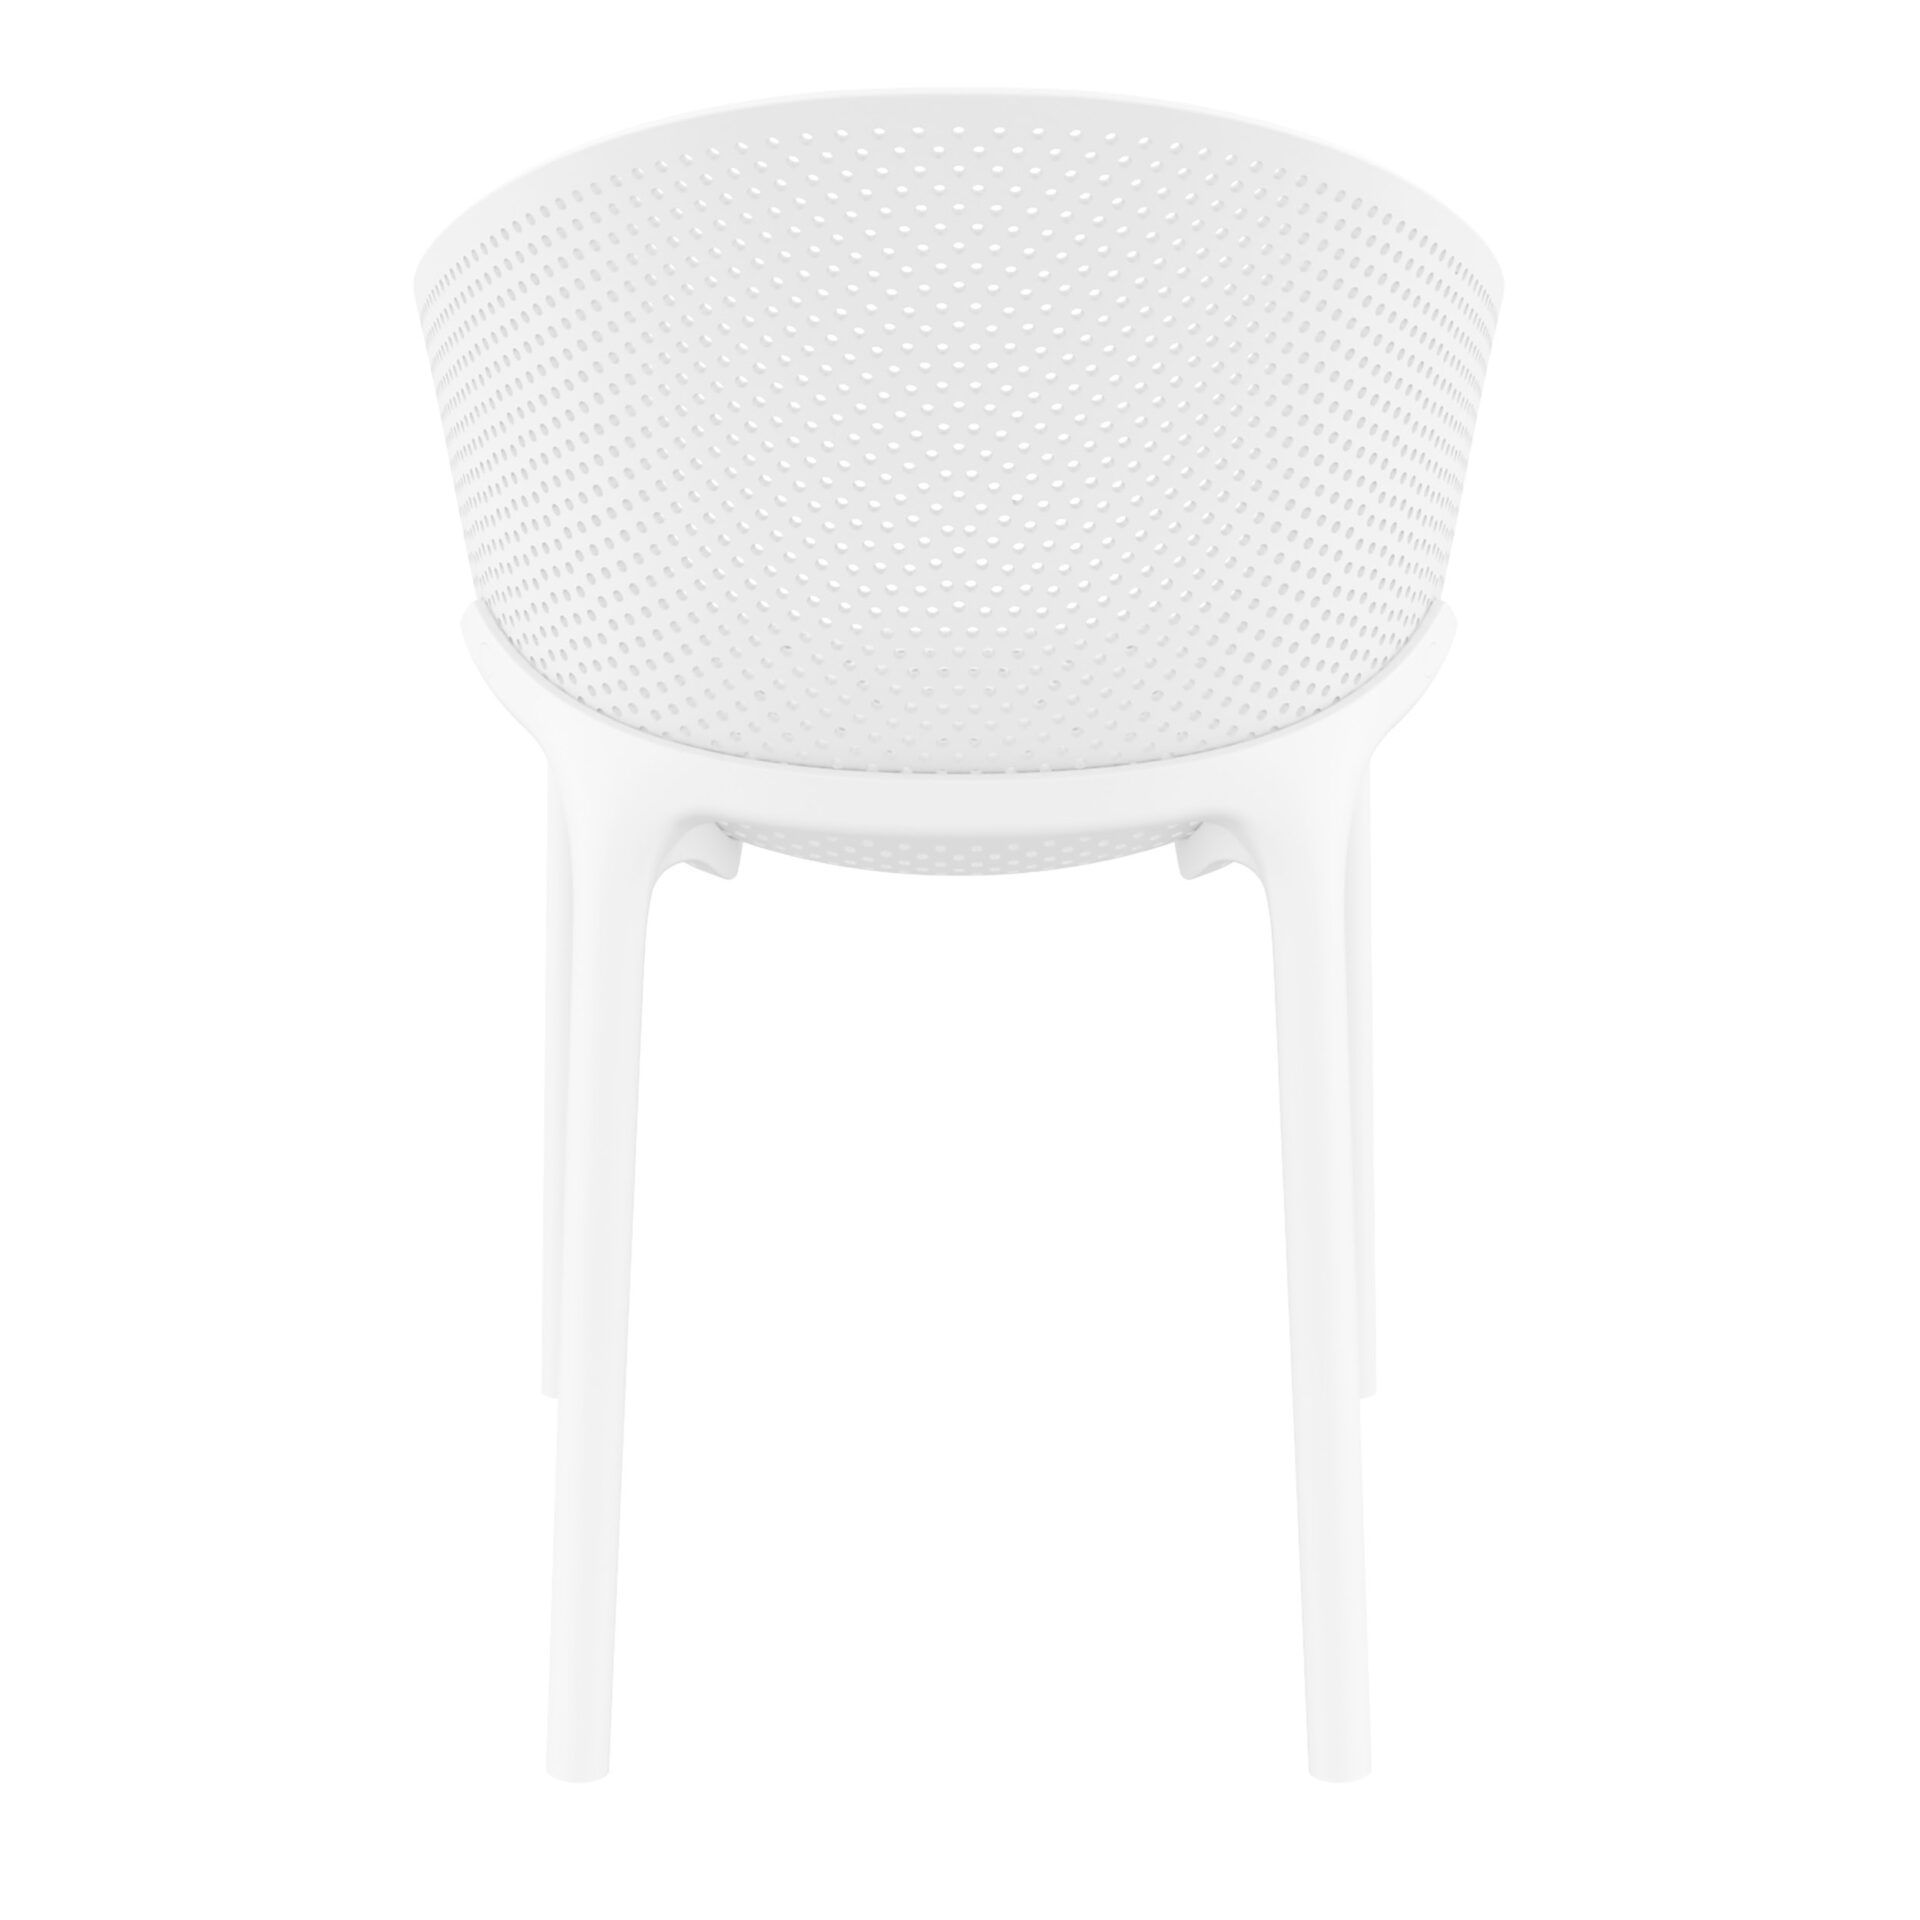 outdoor seating polypropylene sky chair white back